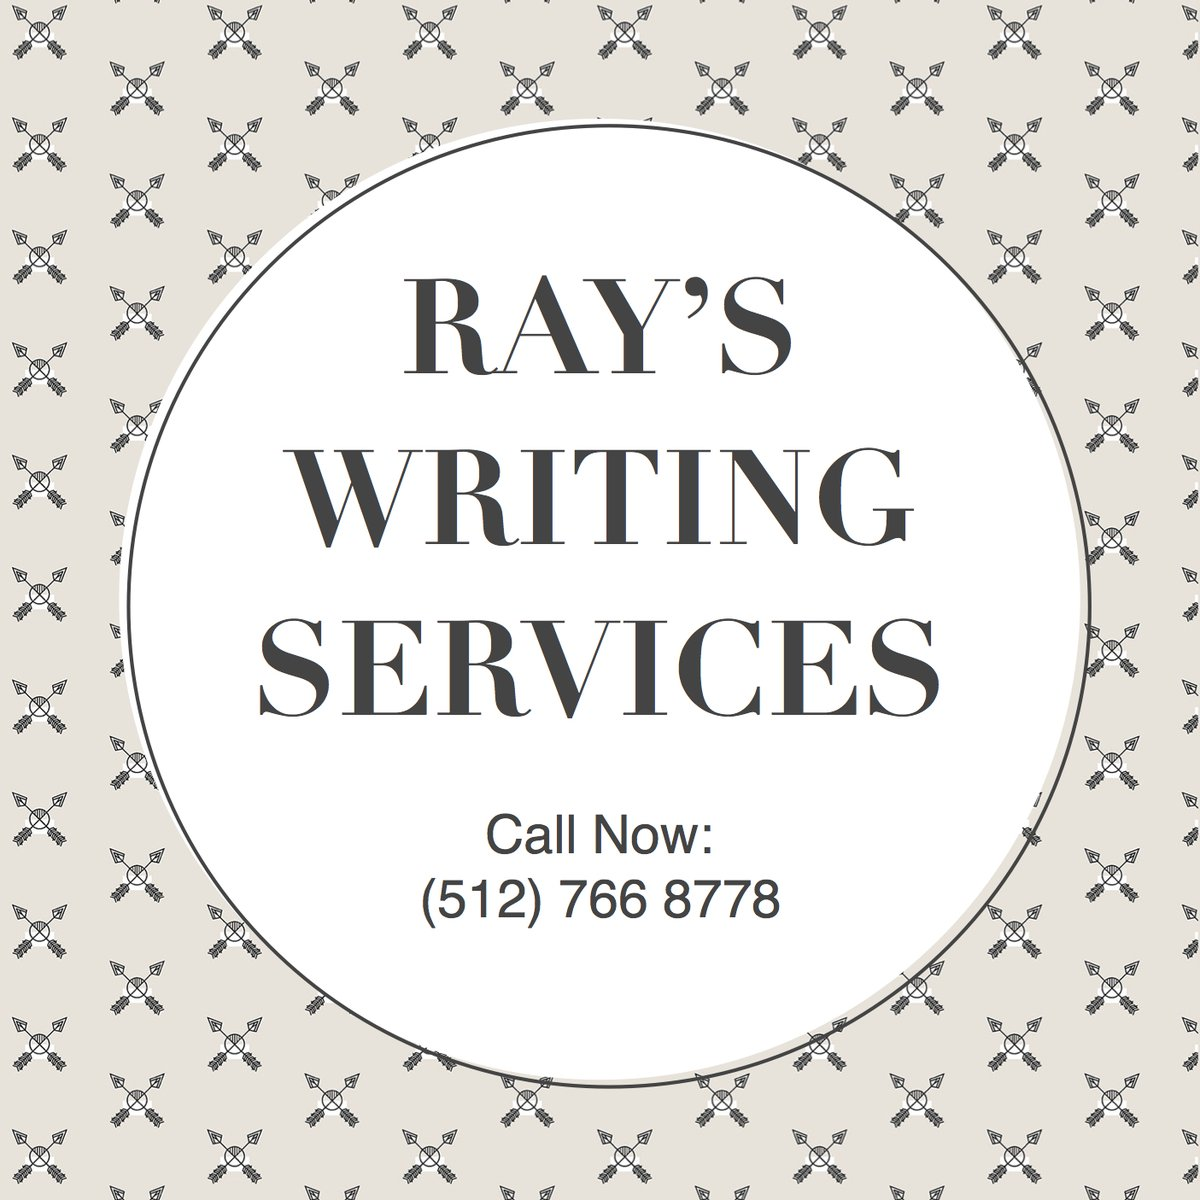 You need to provide genuine value to your readers. How? Call or email Ray's Writing Services to find out.  #Writer #Editor #B2B #B2C #Content #ContentMarketing  #Ad #Sales #Business #Blogs #Marketing #Copywriting #Ghostwriter #Articles #Listicles #Entrepreneur #WritingCommunitypic.twitter.com/aXlKWvBAA5